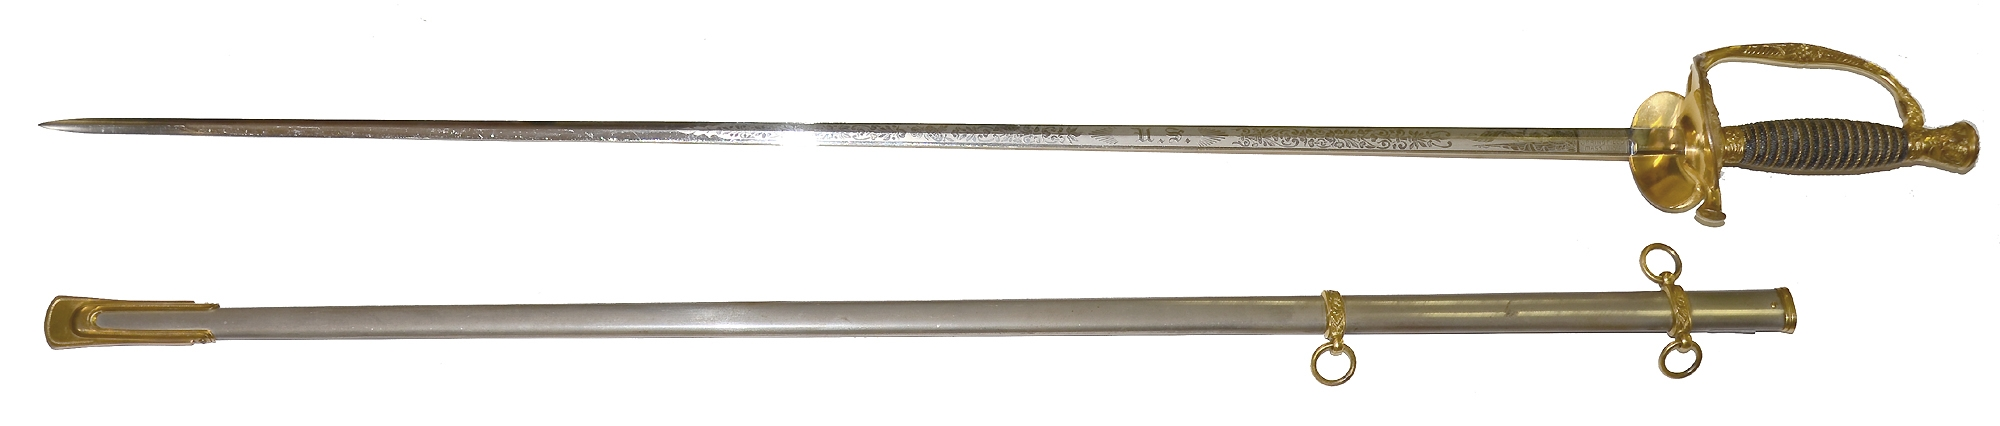 MINTY 1860 STAFF AND FIELD / 1872 STAFF AND LINE OFFICER'S SWORD BY SPRINGFIELD ARMORY WITH GILT AND VIVID ETCHING